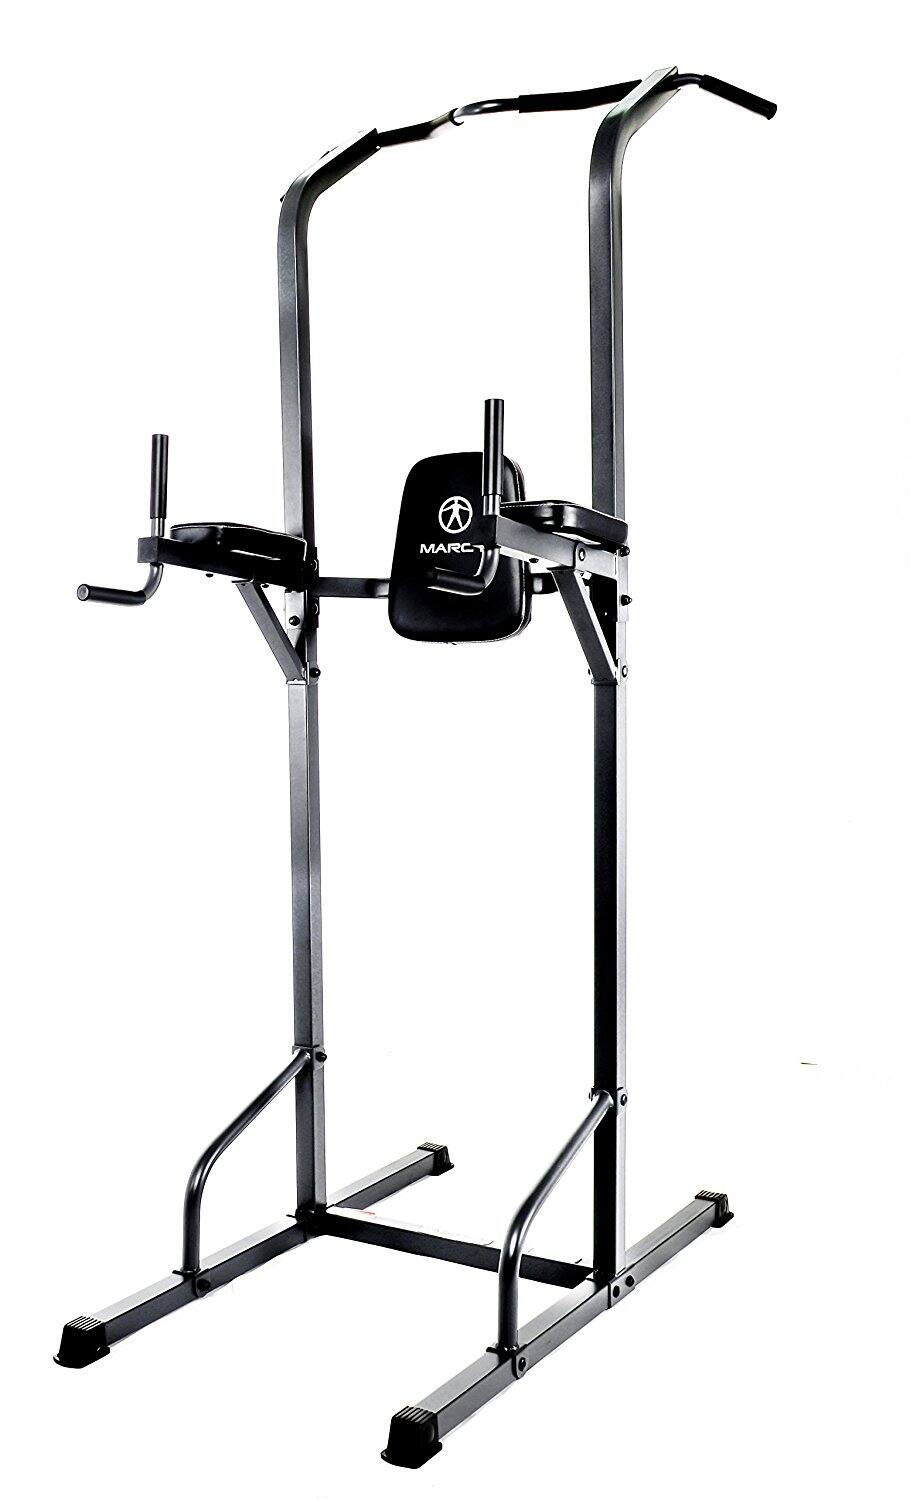 Marcy Power Tower Stand $69.99 + Free Shipping